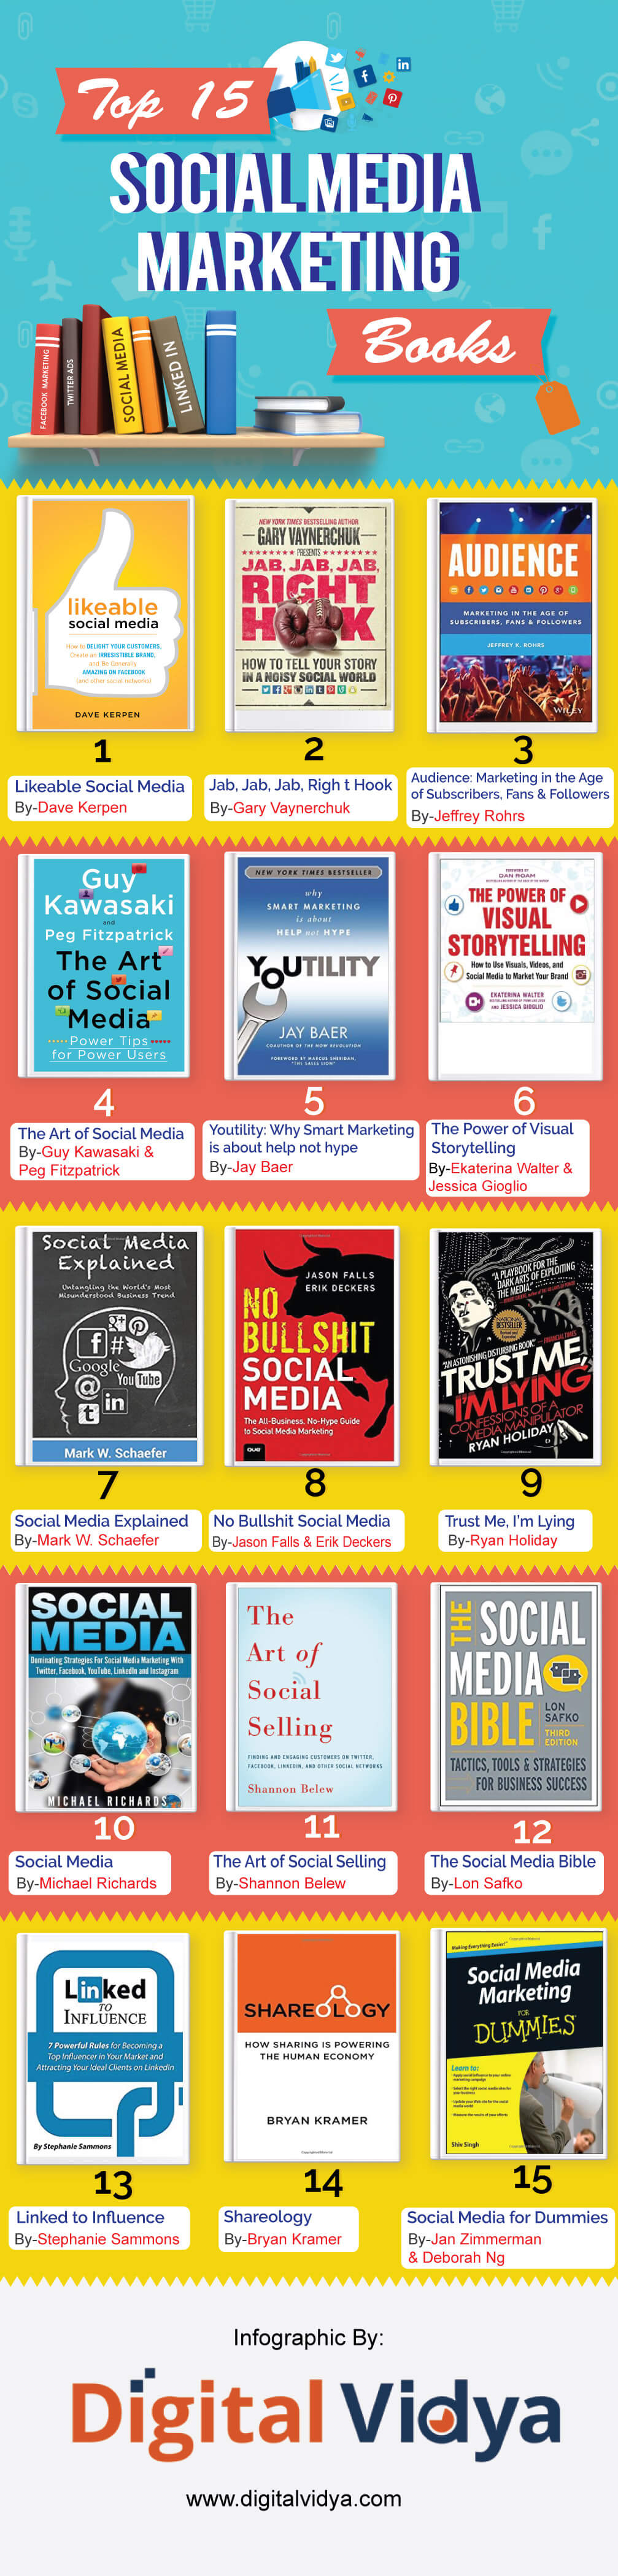 Top Social Media Marketing Books_infographic